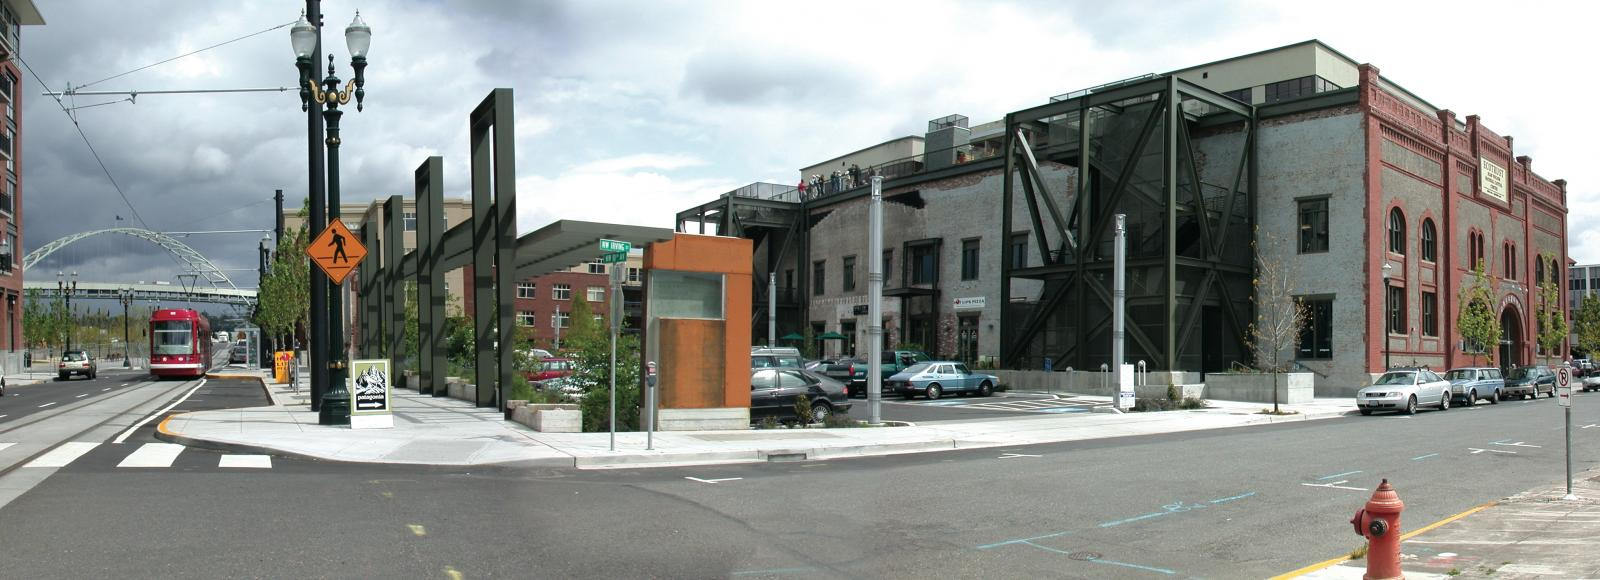 A view of the Natural Capital Center, shortly after the renovation was completed in 2001, from the southwest. You can see the Fremont Bridge to the north and the streetcar tracks that run along the west side of our block.